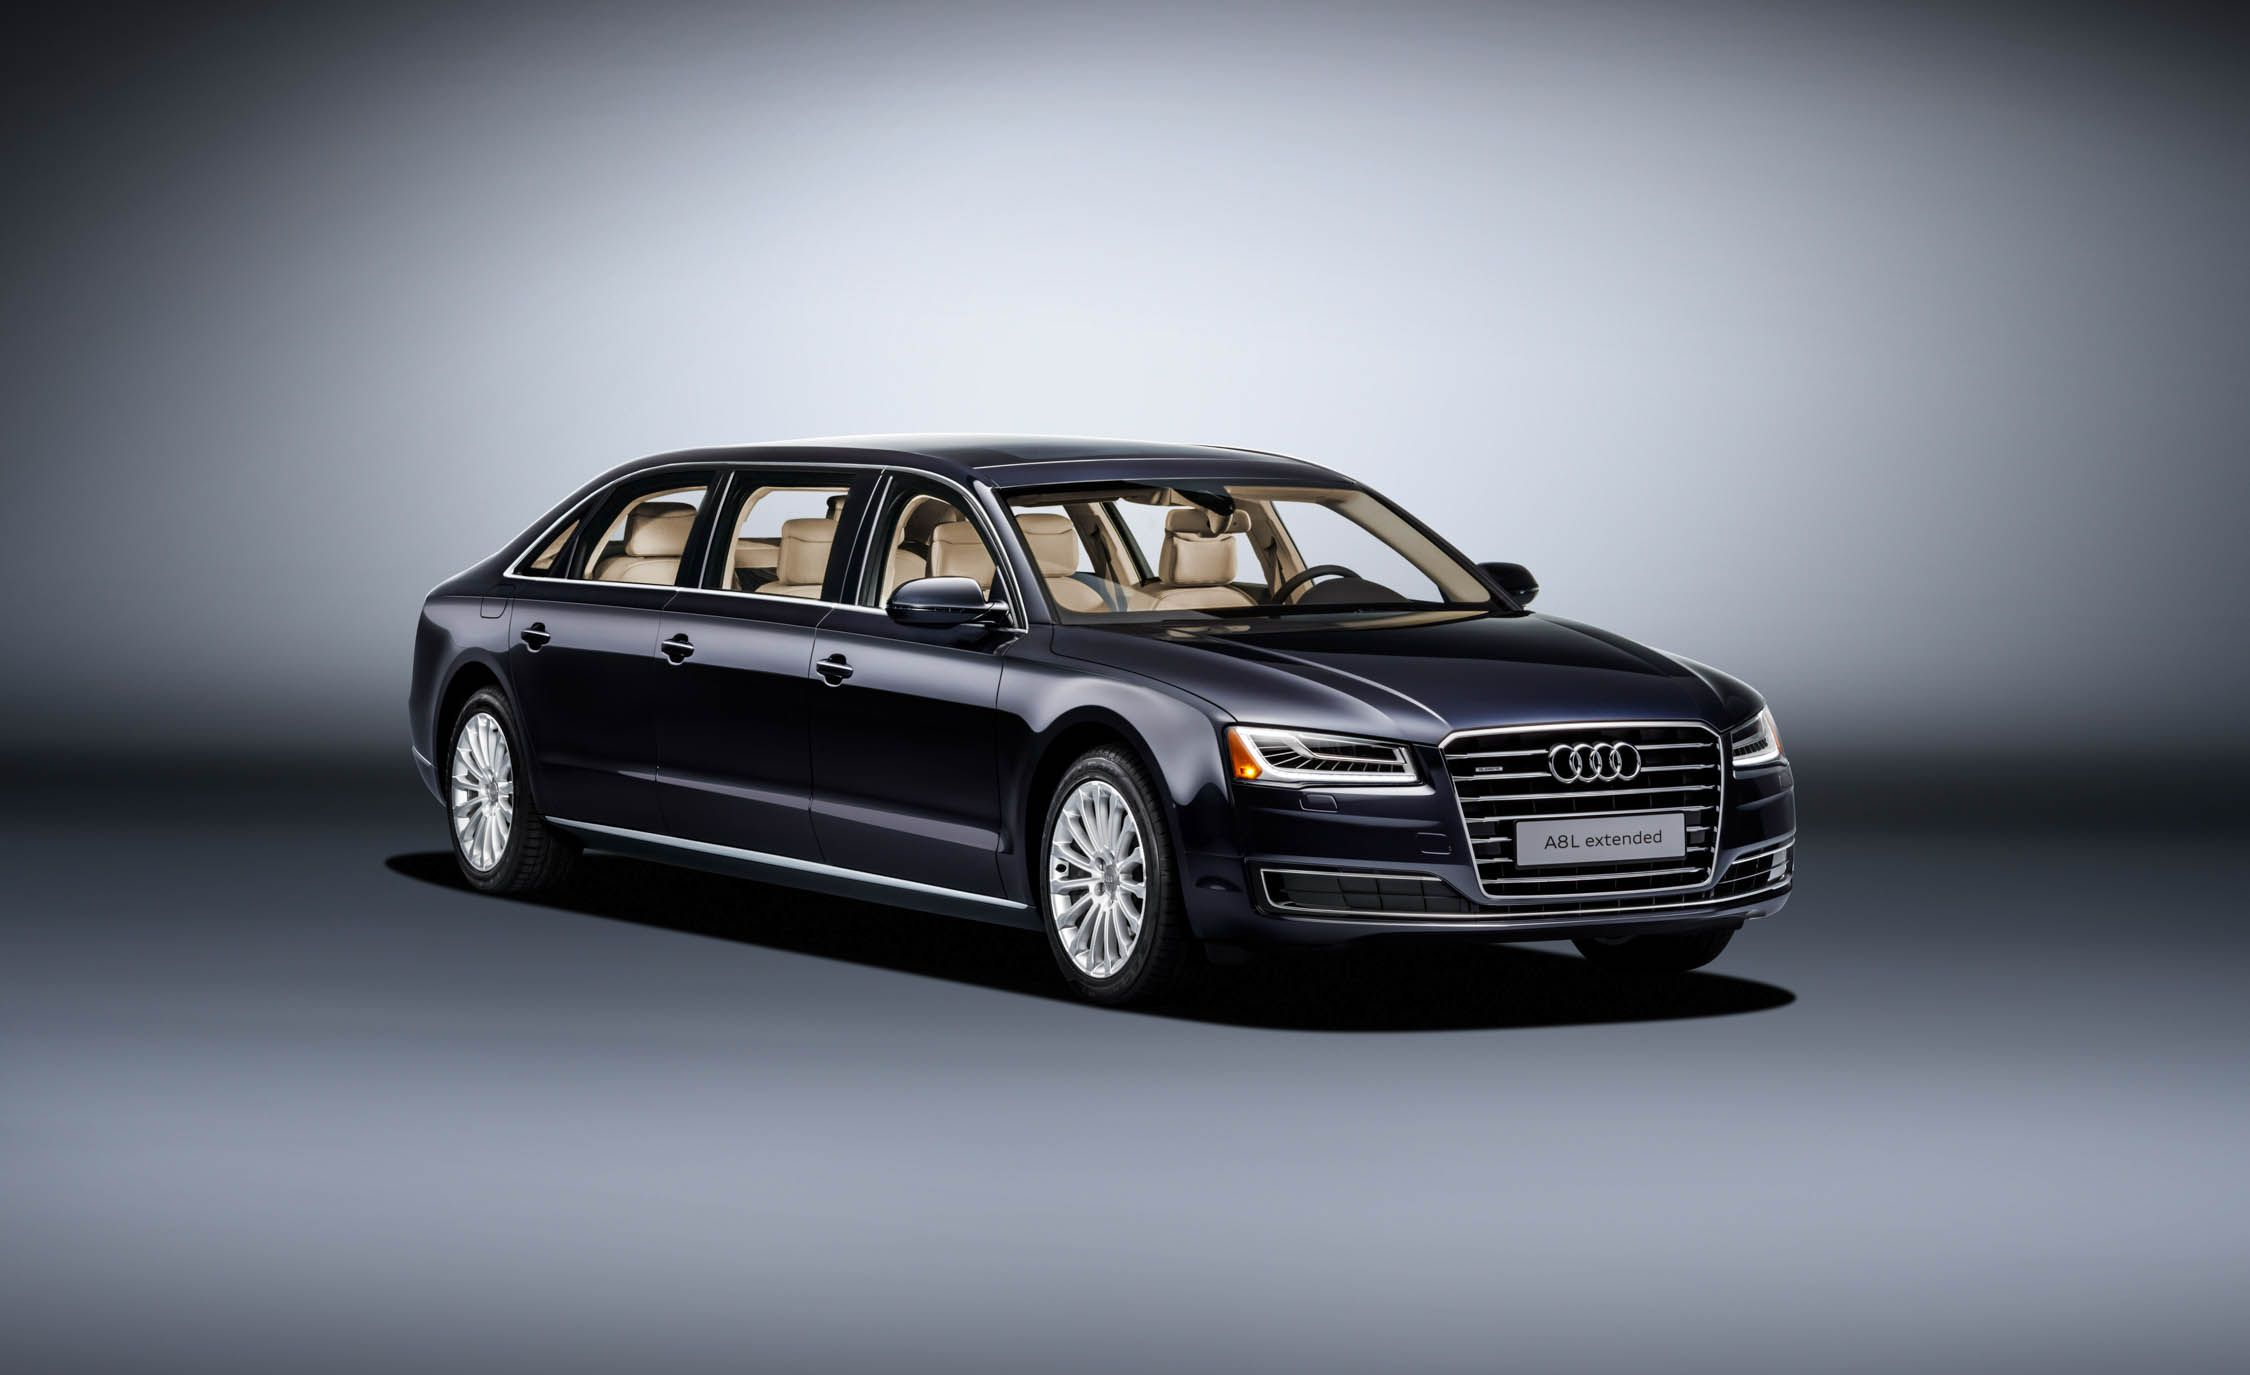 audi builds a six door a8l extended for one special customer